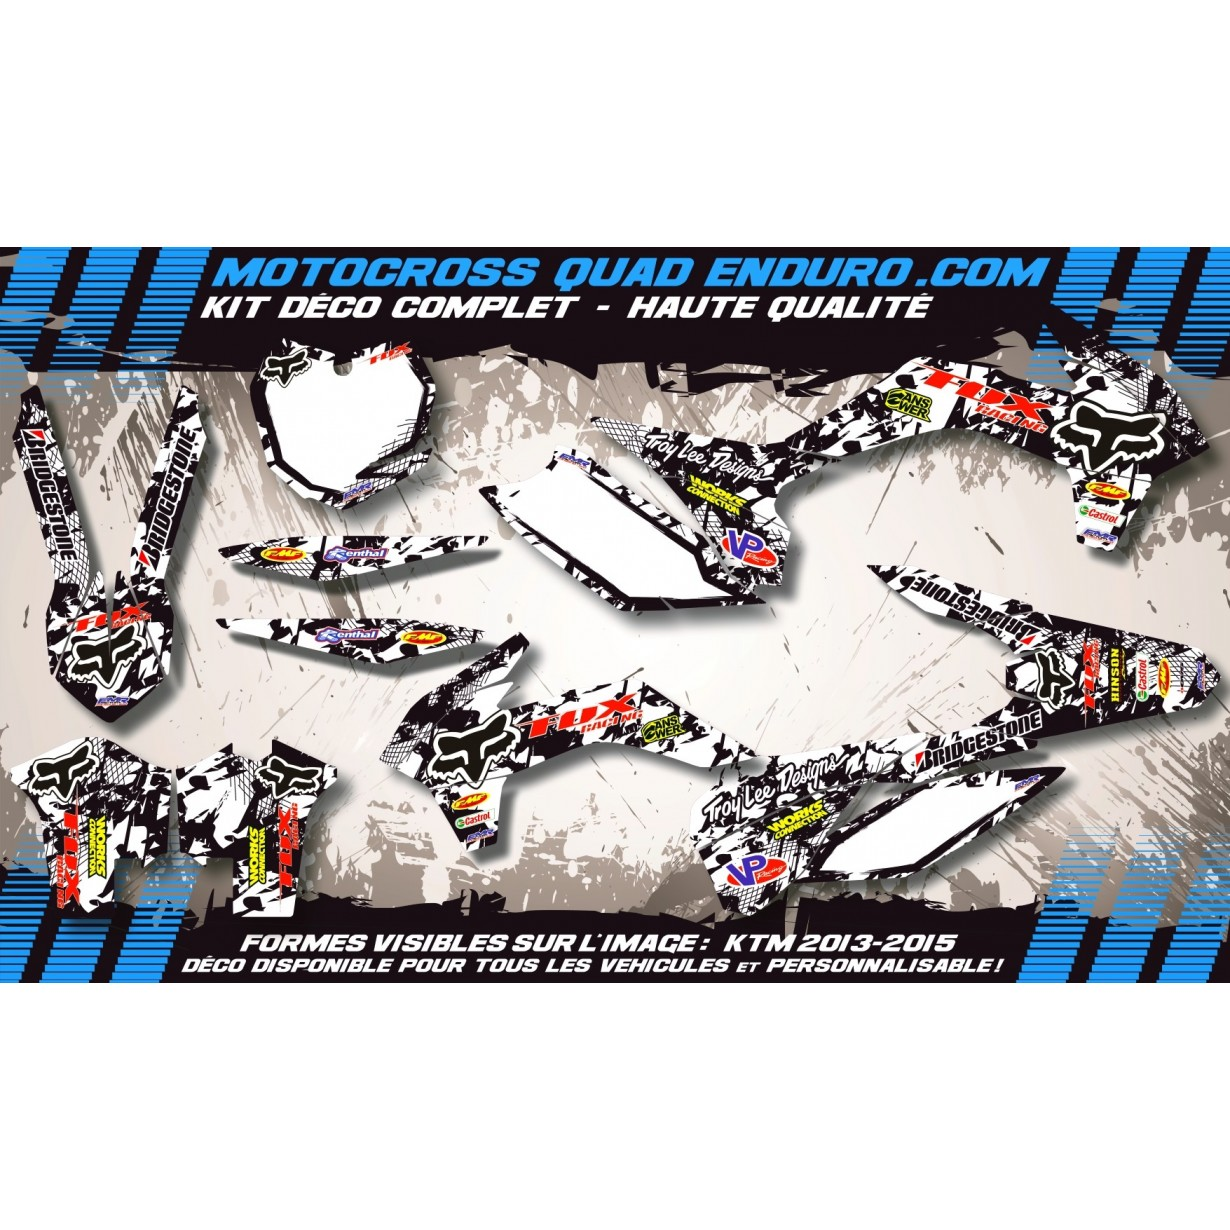 KIT DÉCO Perso FE 06-08 FOX MA9F